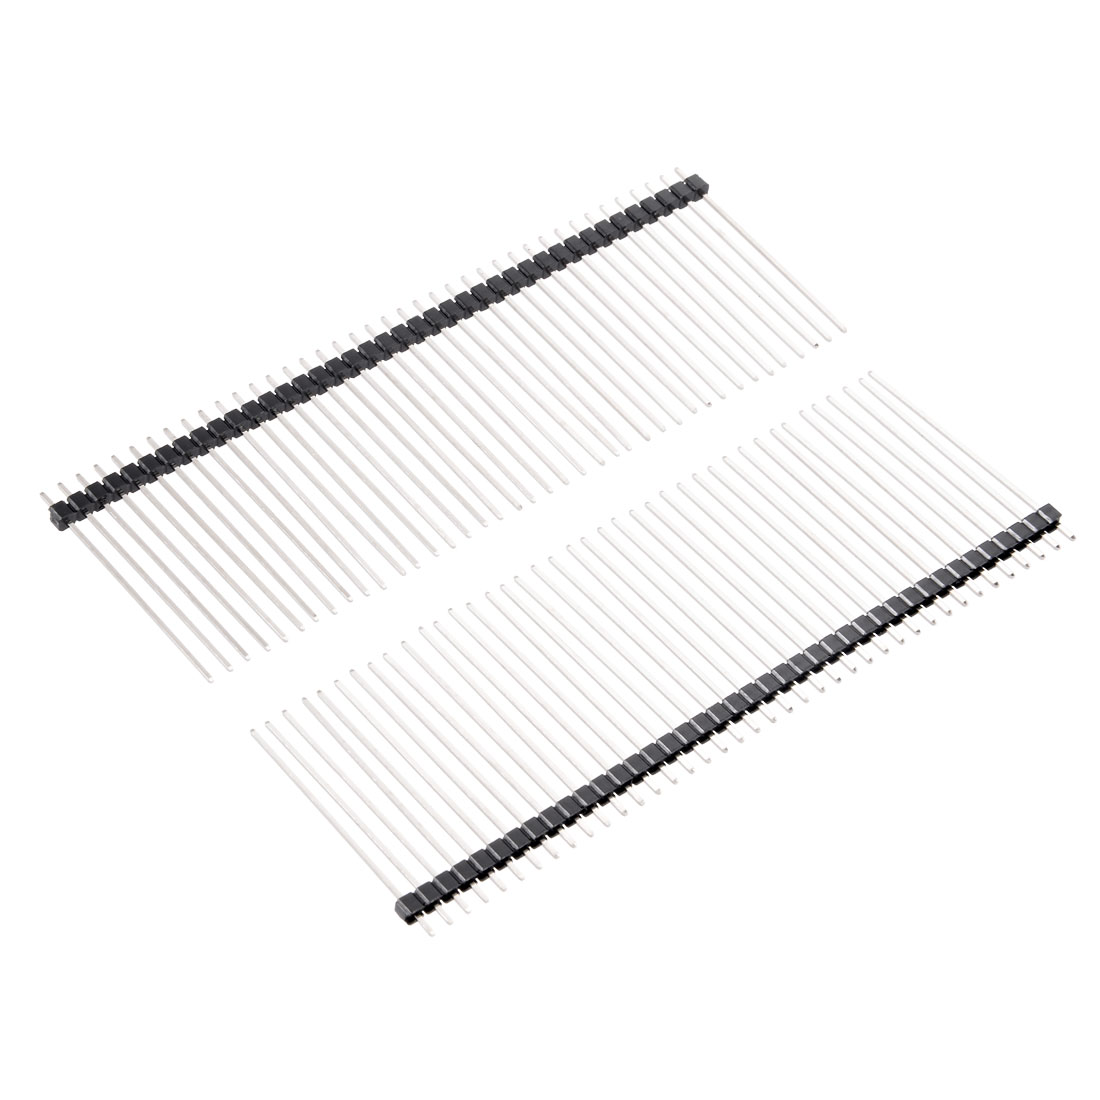 Uxcell 30Pcs Single Row Straight Connector 40Pin 11-40mm Length 2.54mm Pitch Pin Header Strip For Arduino Prototype Shield